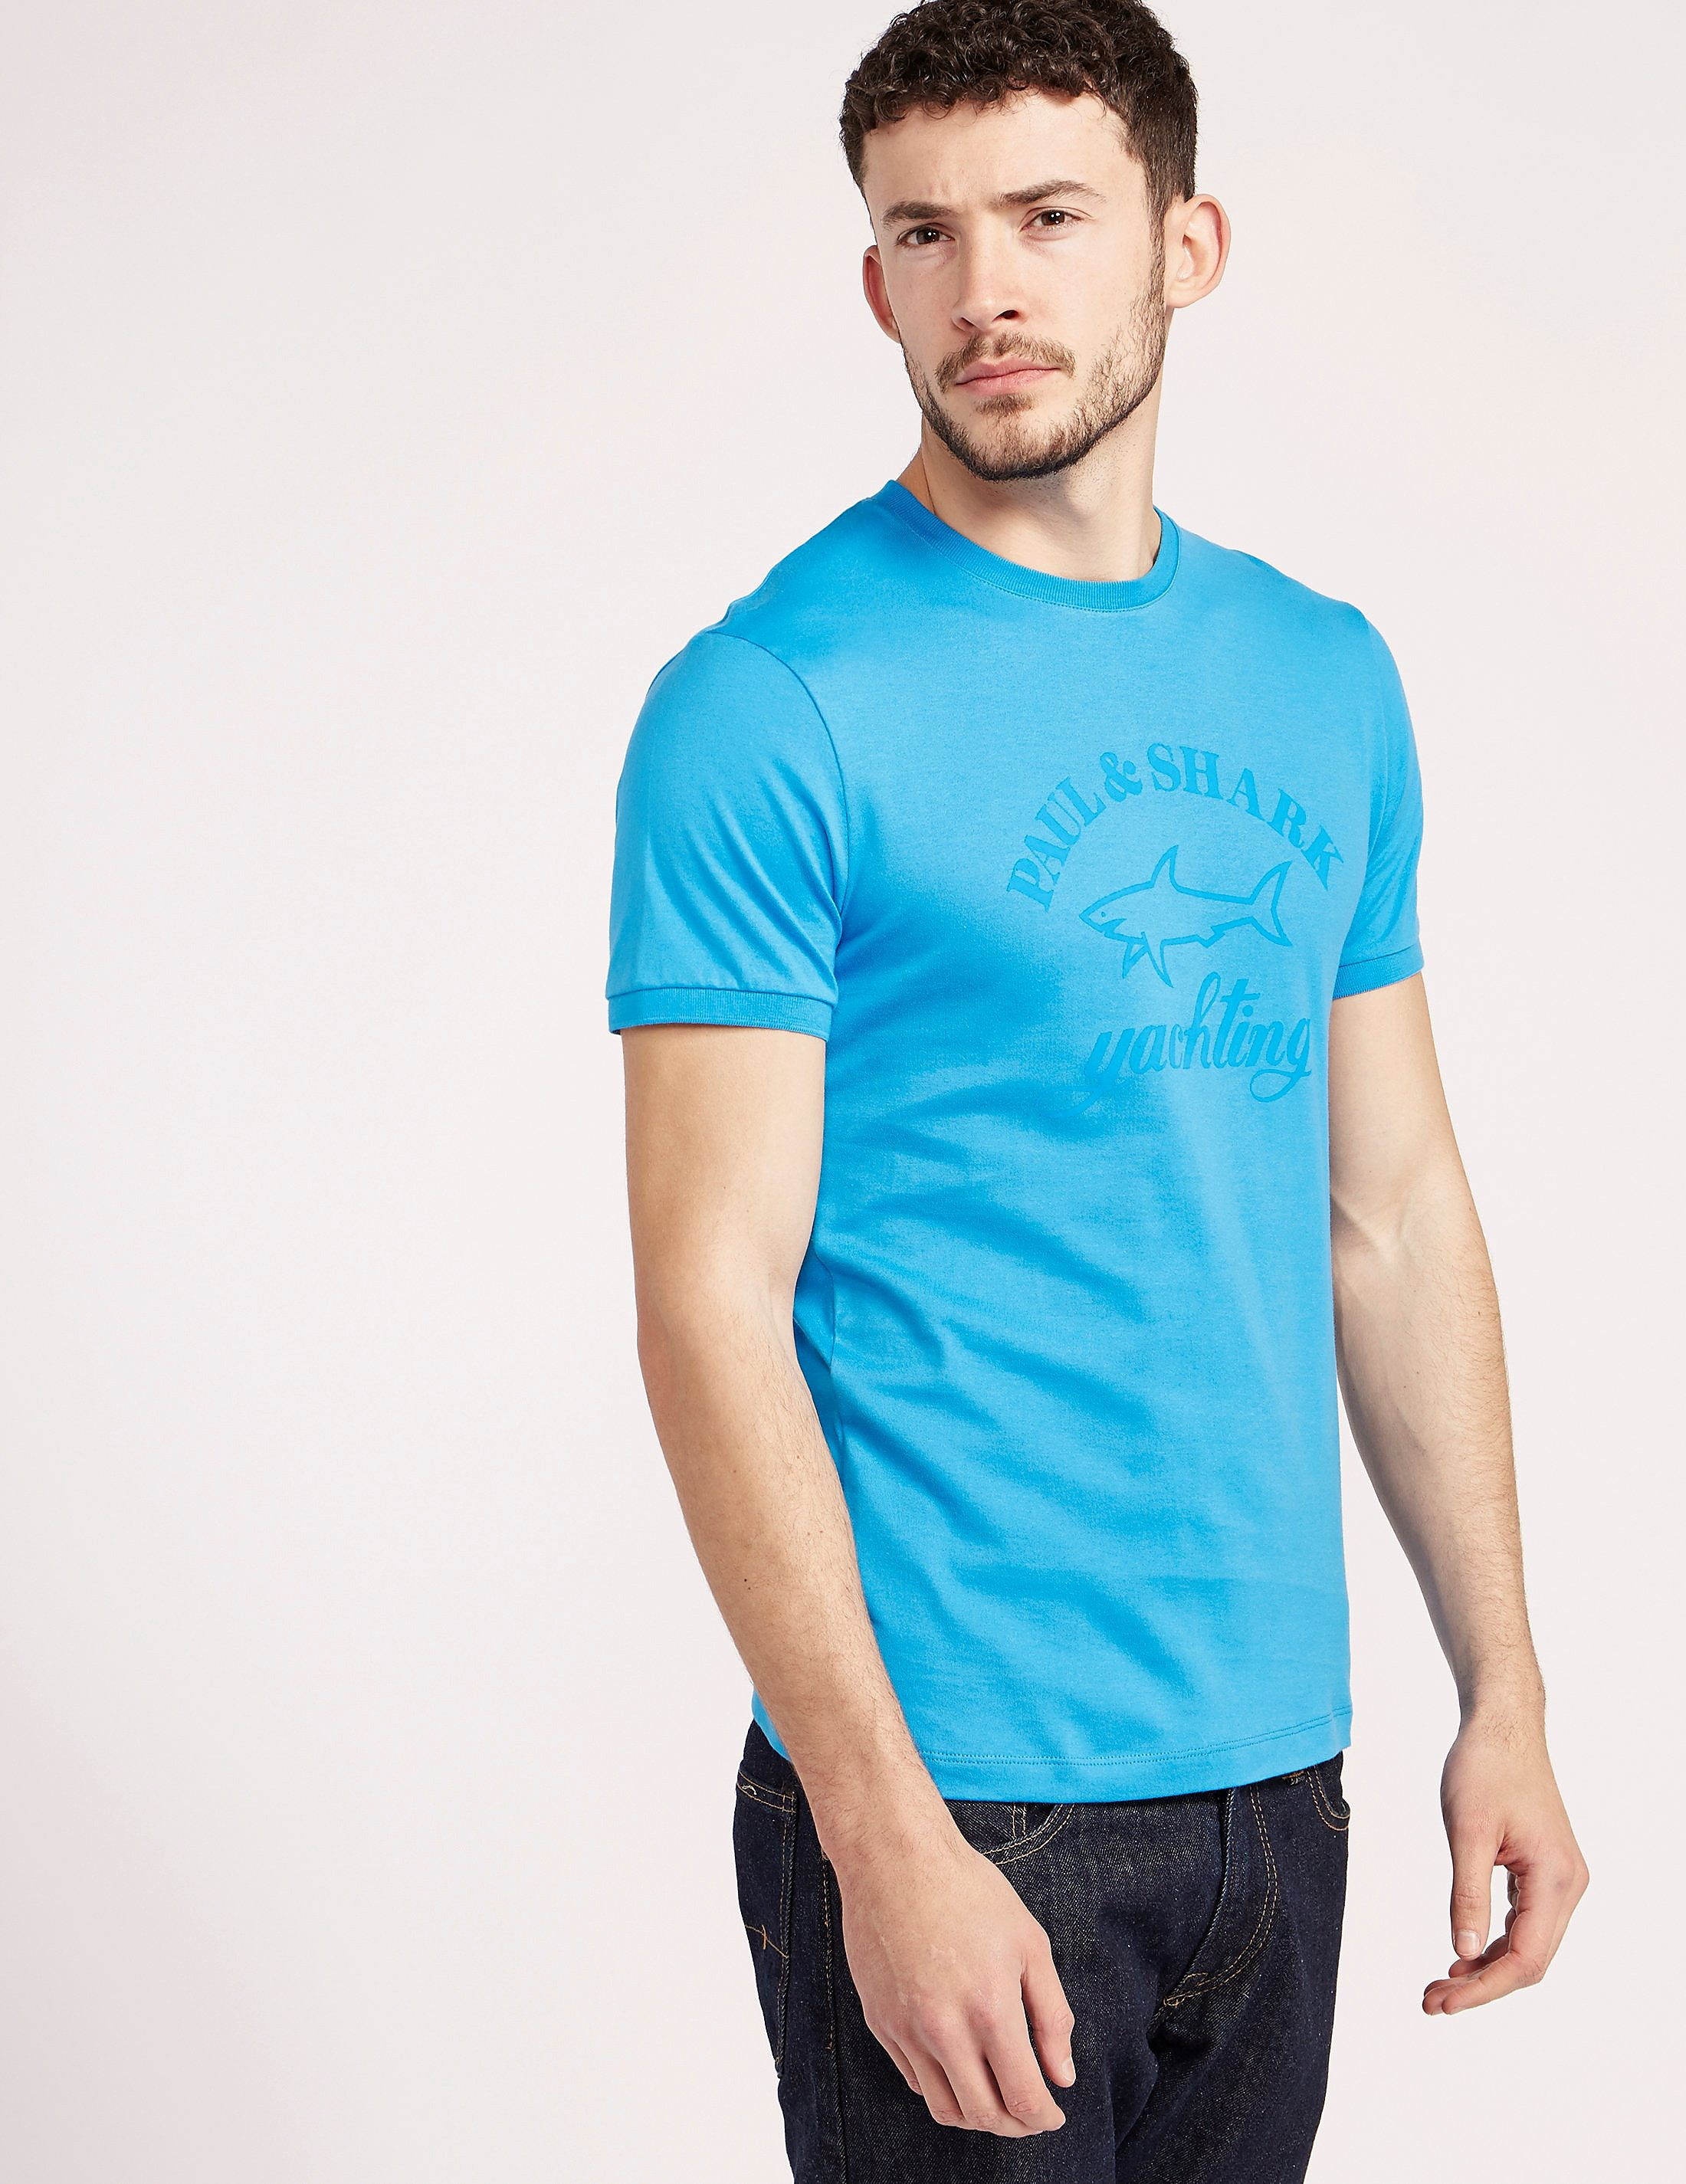 Paul and Shark Tonal Print Short Sleeve T-Shirt